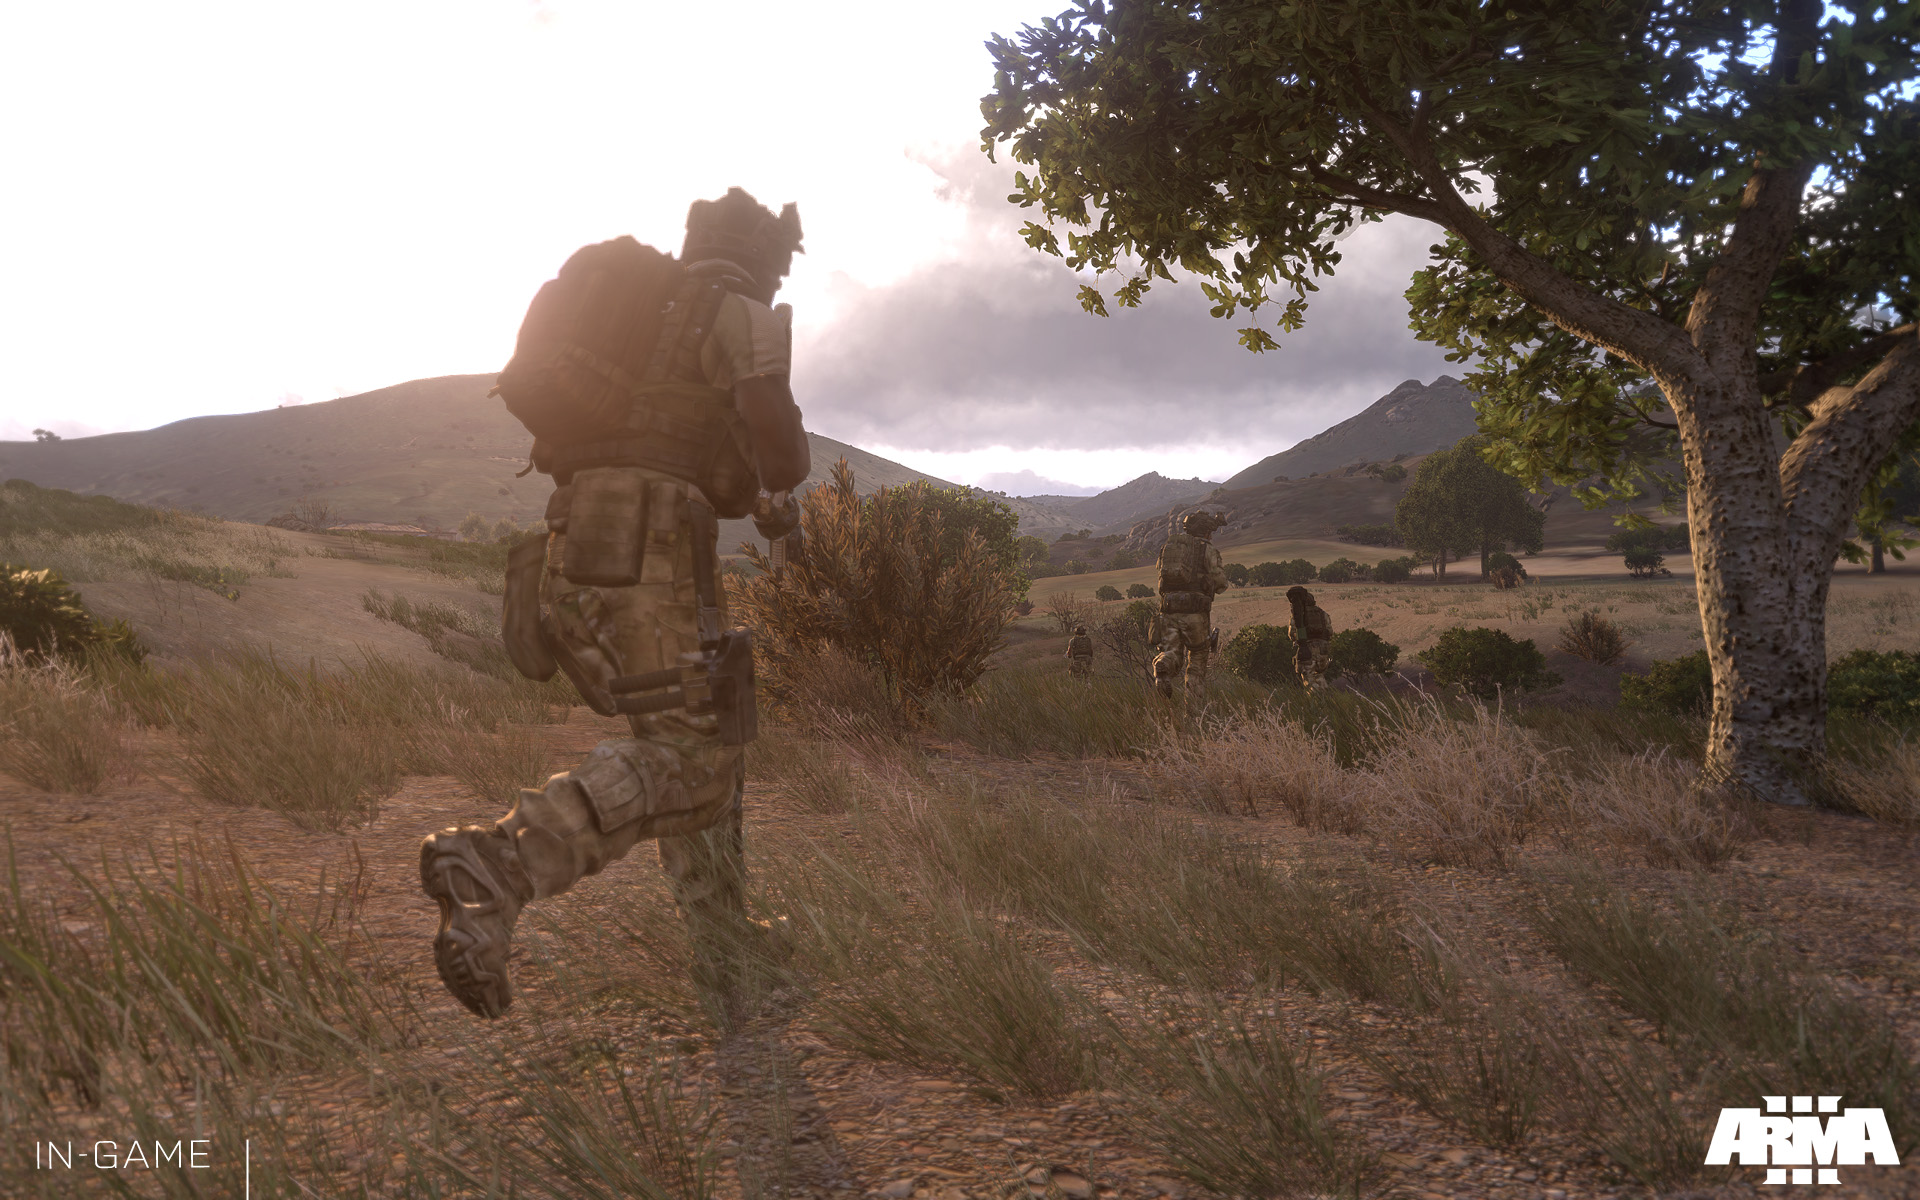 Marksmen DLC For Arma 3 Will Release In Early April VG247